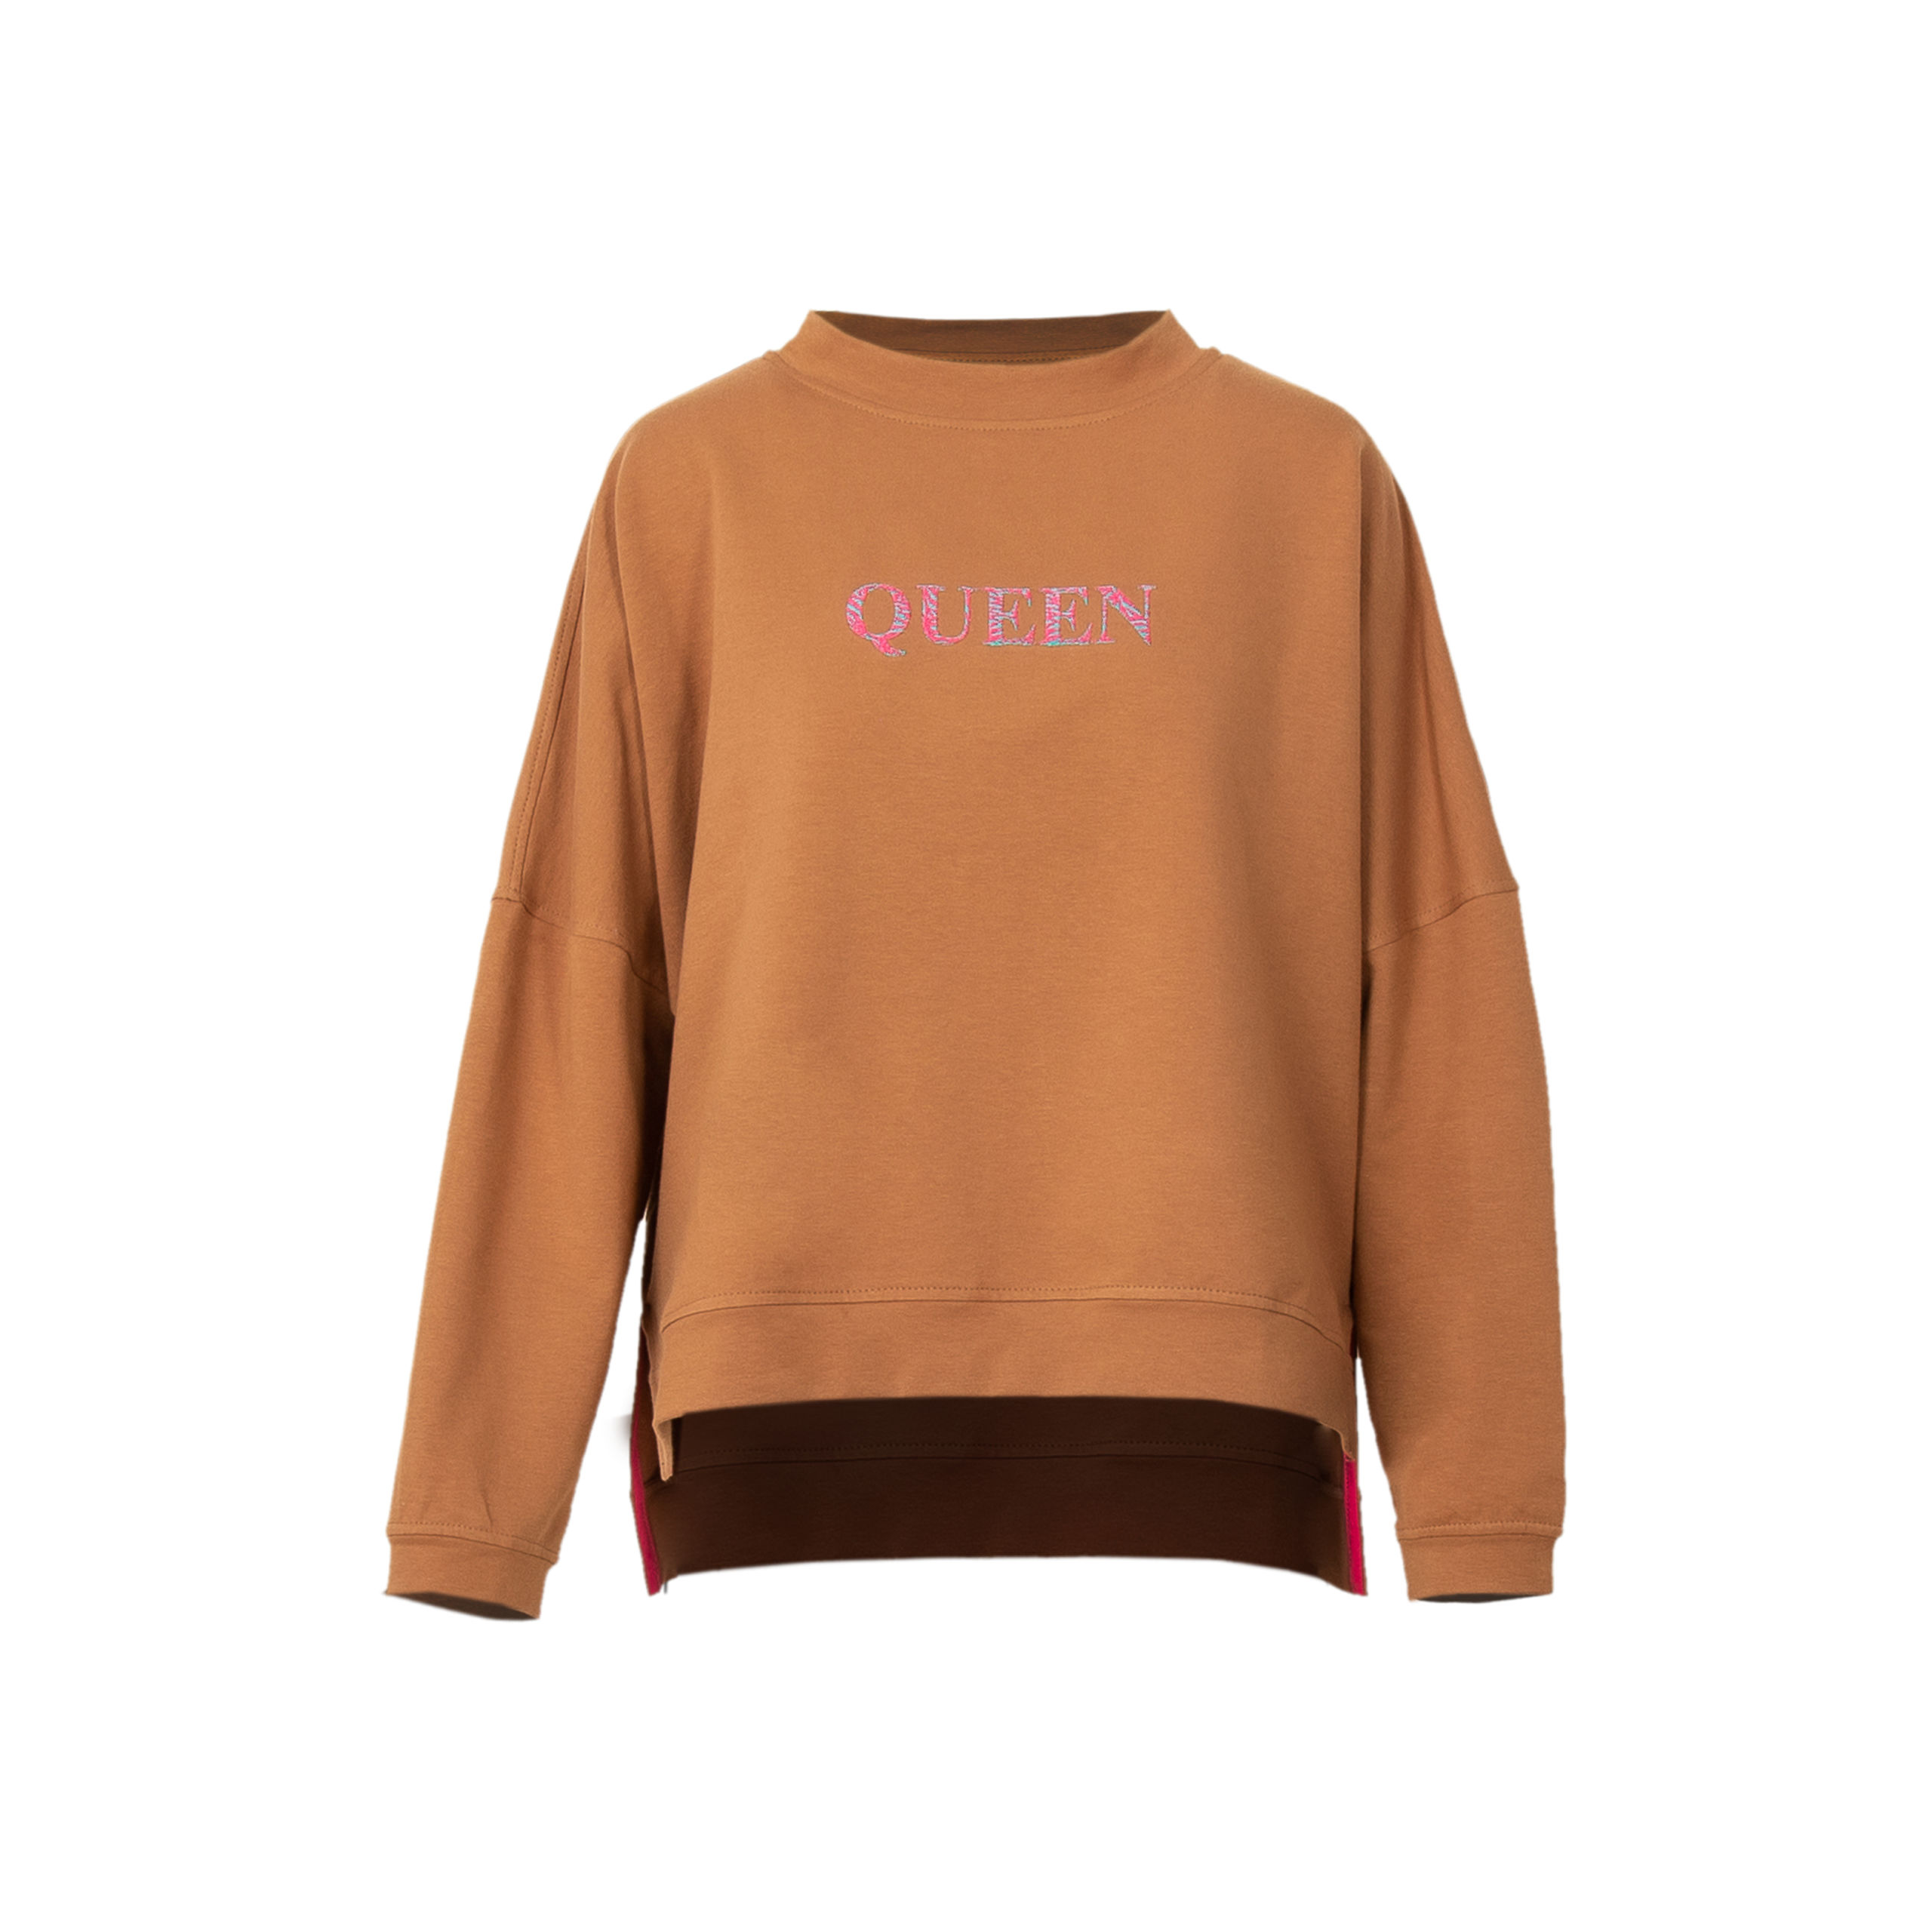 soft , embroidered , Sweatshirt, Camel, Cosel , Poland